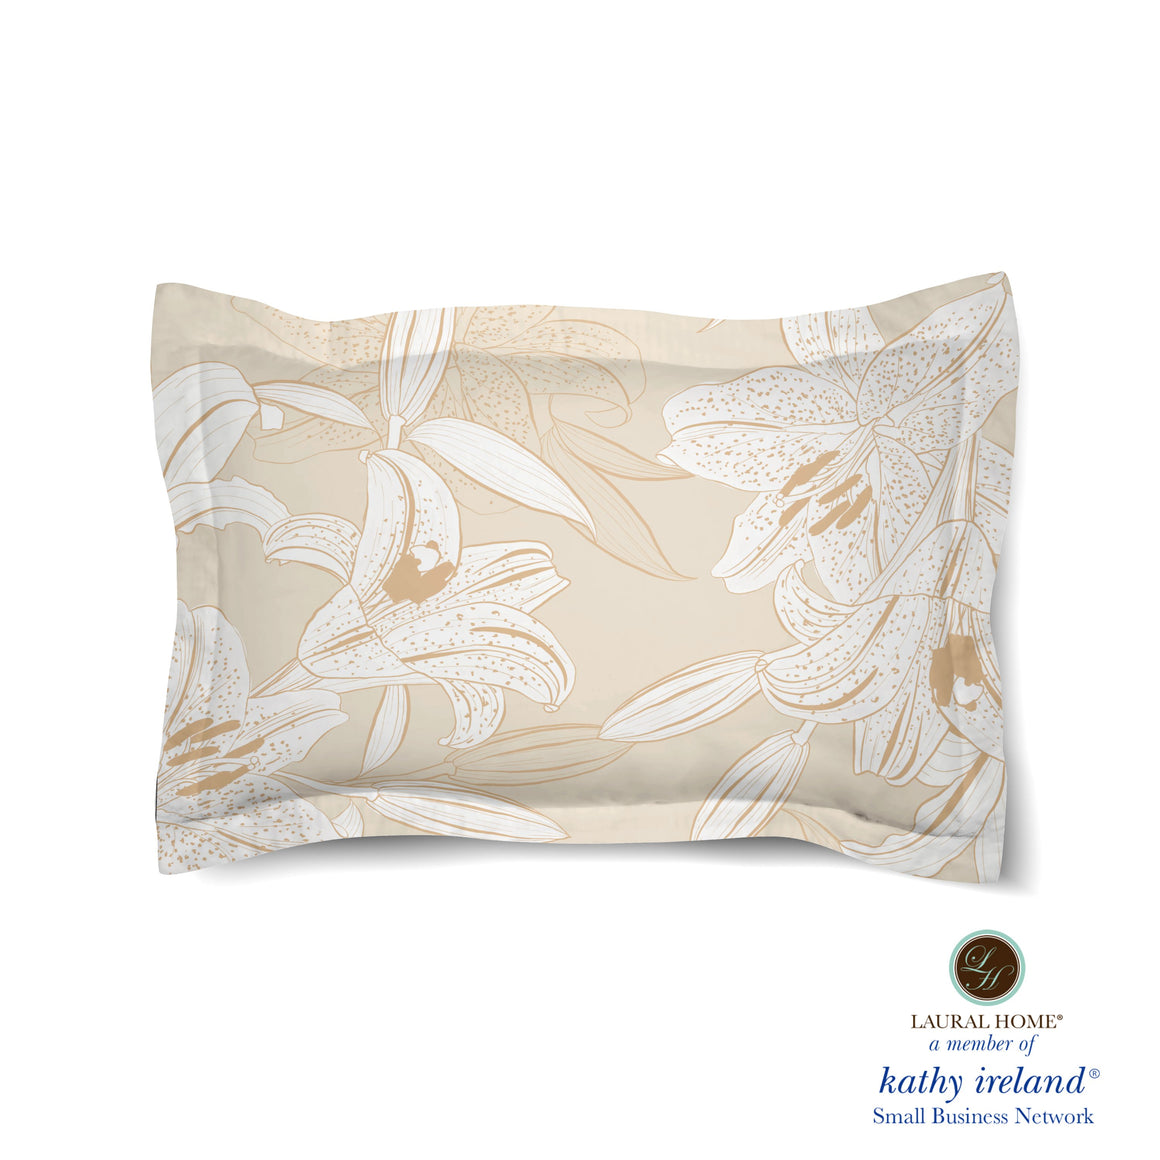 Laural Home kathy ireland® Small Business Network Member Peaceful Elegance Lily Comforter Sham